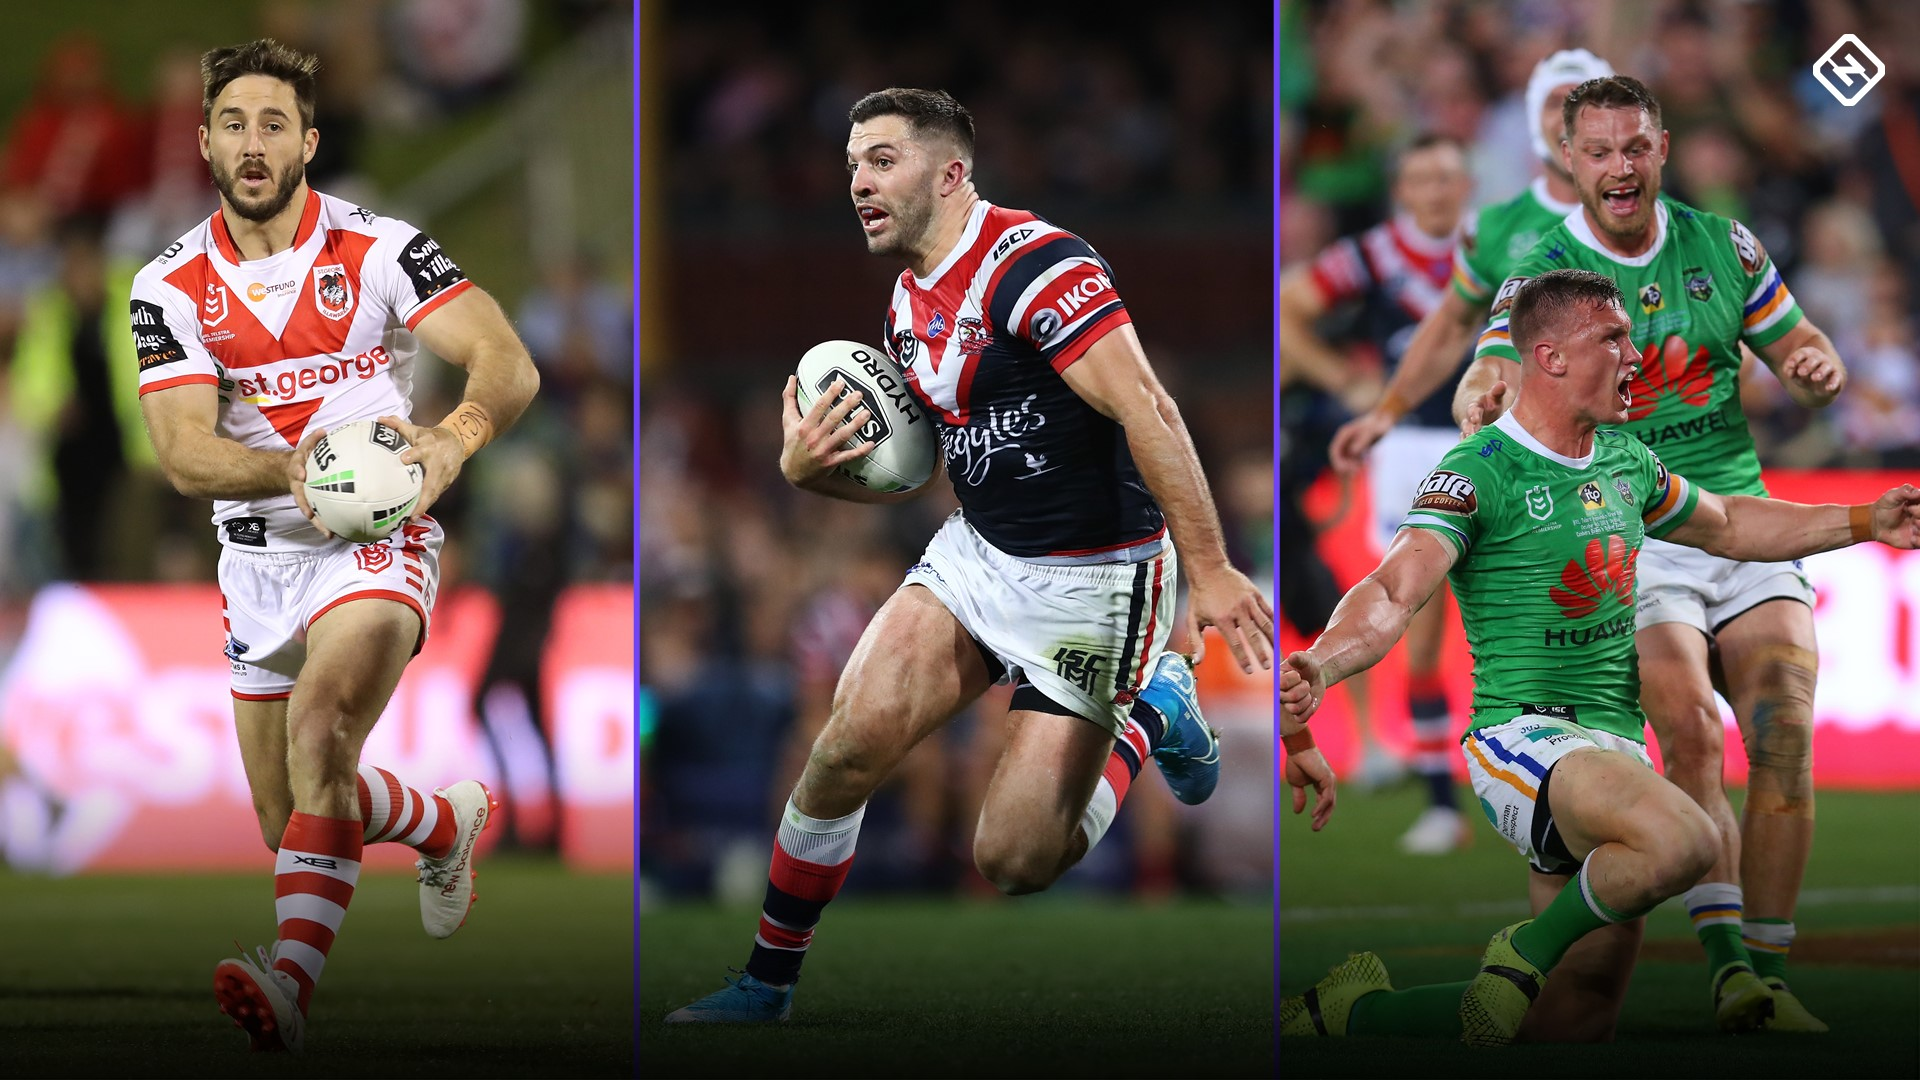 Nrl 2020 Every Club S Full 30 Man Roster And Development Squad Sporting News Australia